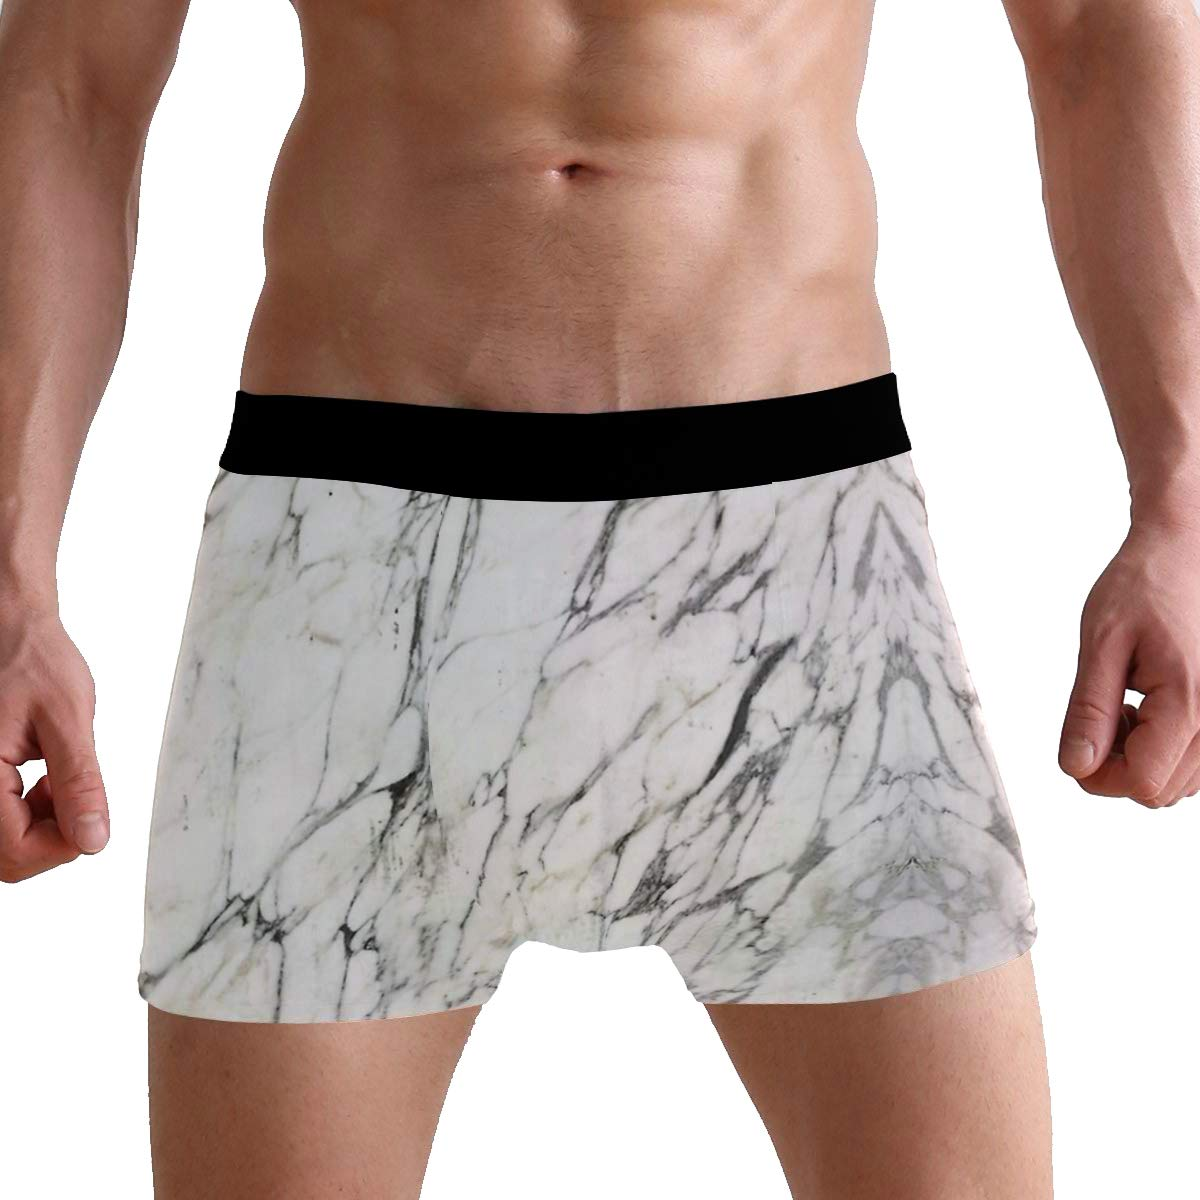 White Marble Art Ultimate Soft Sports-Inspired Microfiber Stretch Boxer Briefs,Breathable Fast Drying Action Boxer Briefs Mens Underwear